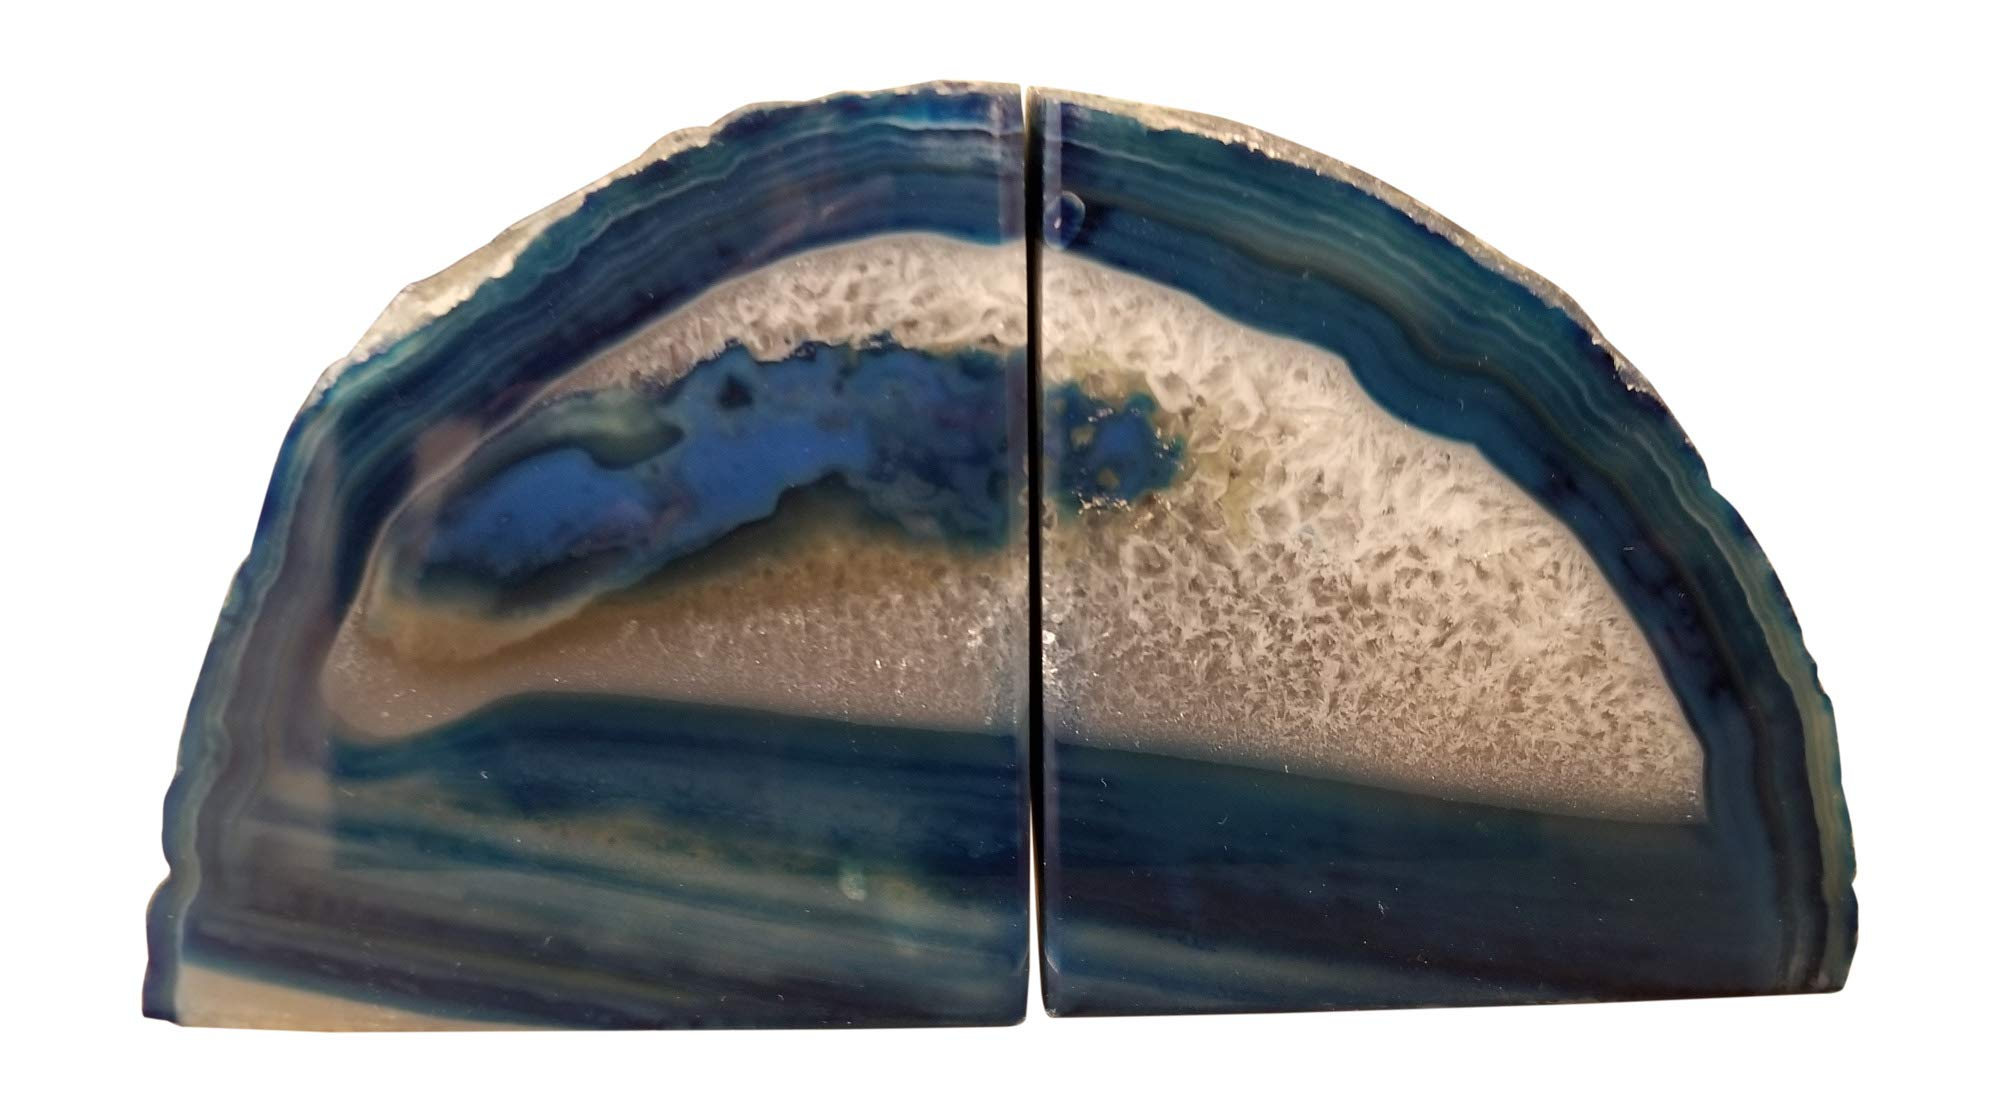 Natural Brazilian Agate Stone Coasters, Bookends and Wind Chimes Set, Incl 4 Large Coasters 4''-5'', 1 Pair of Bookends 2-3 lbs and Wind Chimes, Free Microfiber Polishing Cloth and 2 Mugs (blue) by Enchanted Dwelling (Image #2)